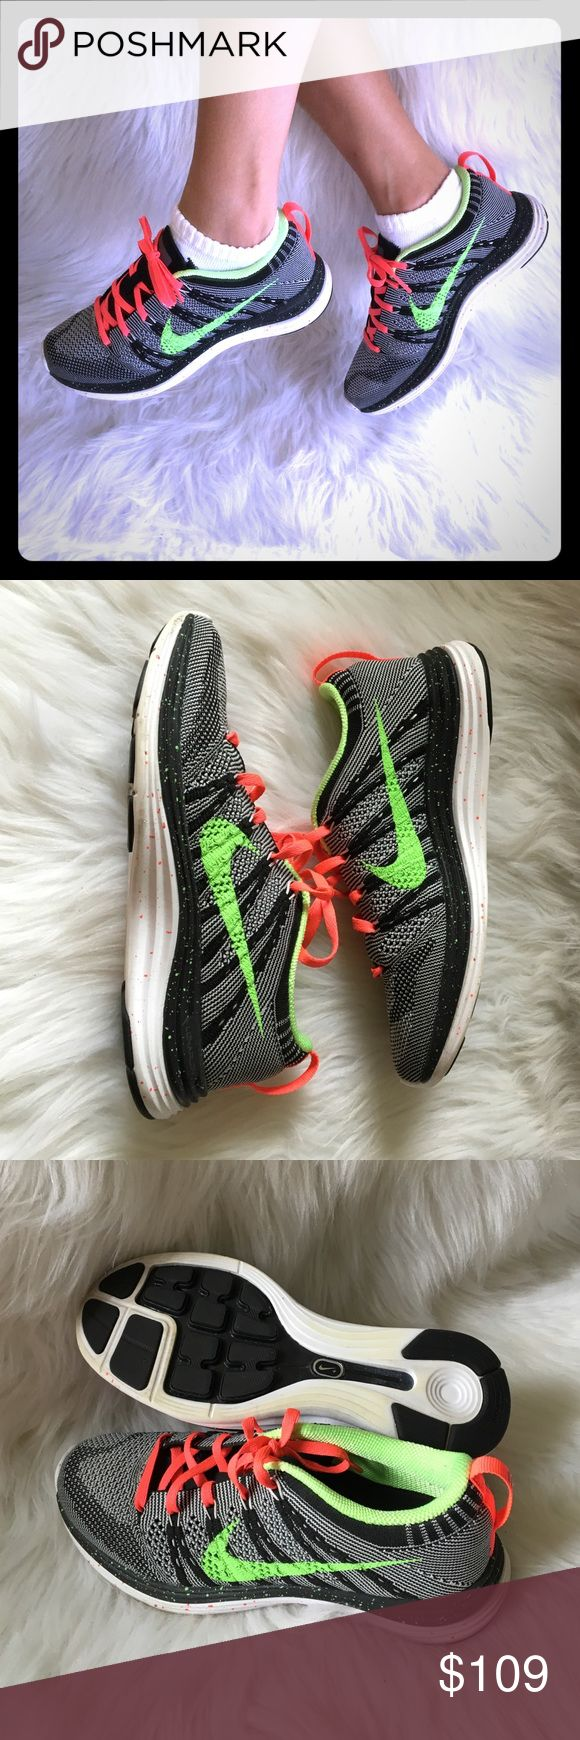 Nike+ iD Flyknit lunar 1 sneakers custom LIKE NEW ALL MY ITEMS ARE 100% AUTHENTIC. 🚫NO TRADES, NO HOLDS, NO LOW OFFERS!🚫 PLEASE USE THE OFFER BUTTON‼️ I WILL NOT RESPOND TO OFFERS  OR HOW LOW I WILL GO IN THE COMMENTS SECTION‼️ No box. Custom made on Nike. Says turner on both tongue. Not noticeable when laced up. Still in amazing condition. Worn only once LIKE NEW!!! Nike Shoes Sneakers